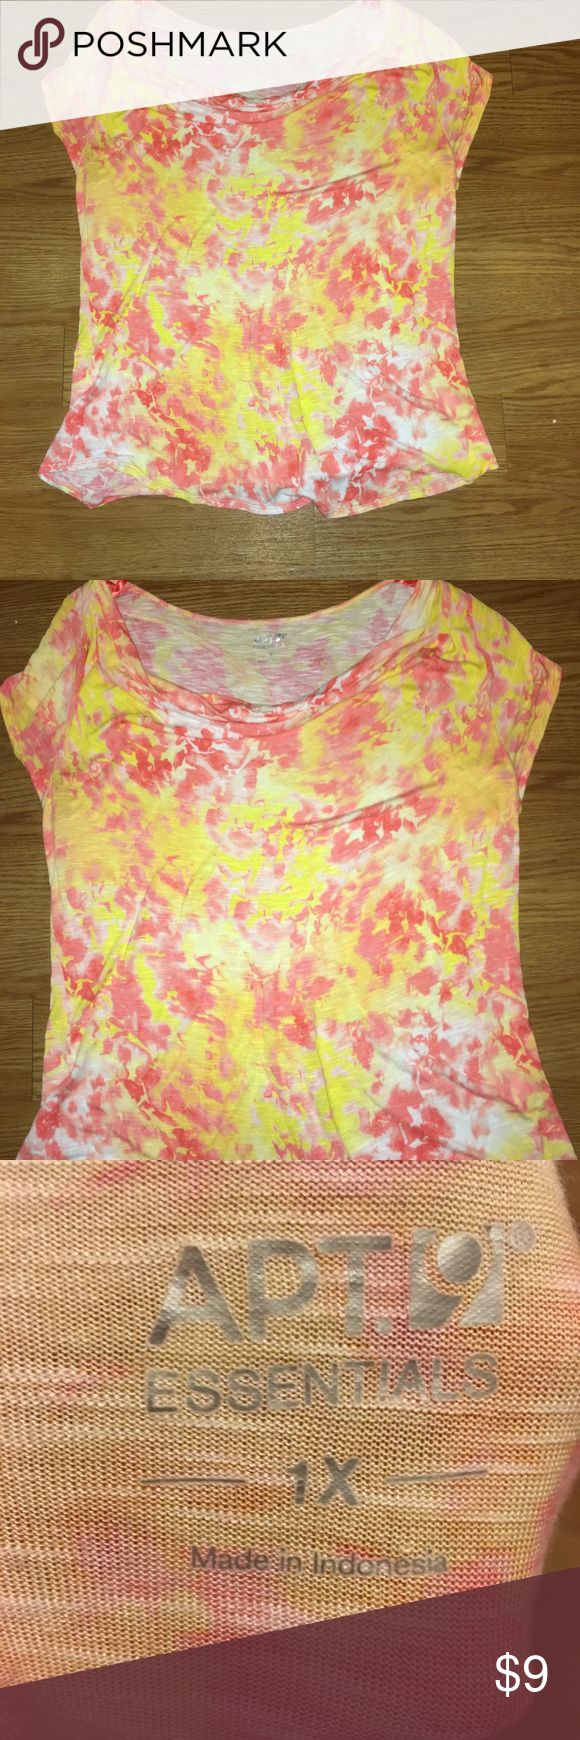 Any 2 ✅for $15 Bright Neon Top Excellent condition. No tears, stains or marks. Combine with any item with a ✅ for a $15 bundle or add three more items for 30% Off Bundles. Apt. 9 Tops Blouses